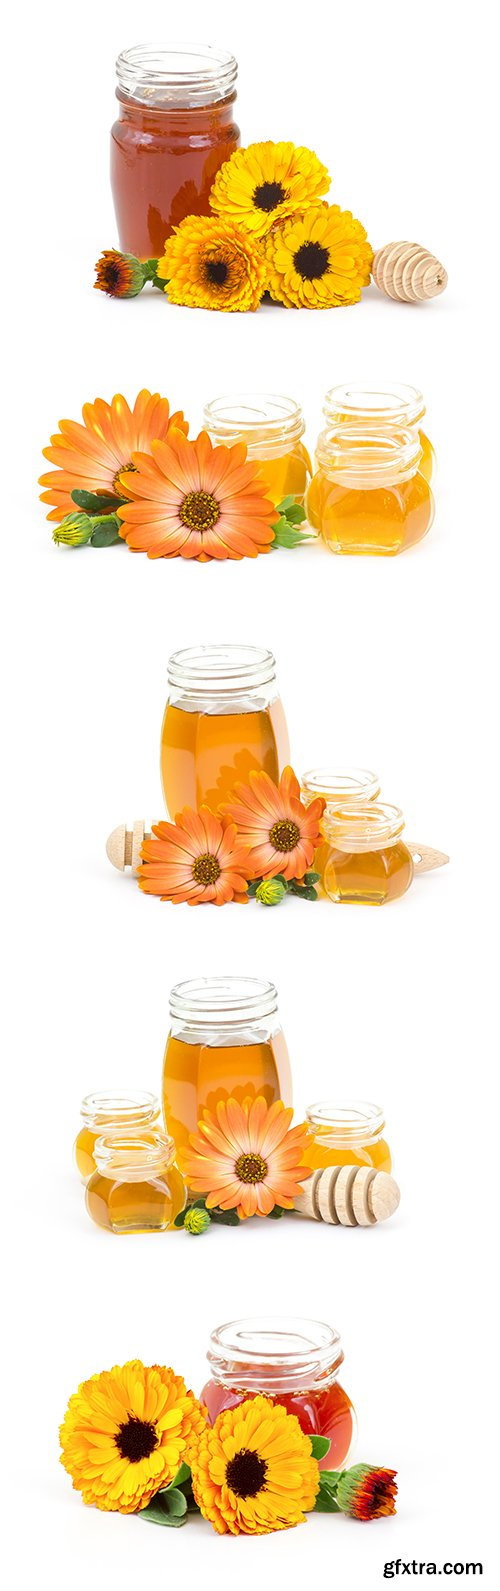 Honey And Calendula Flowers Isolated - 15xJPGs